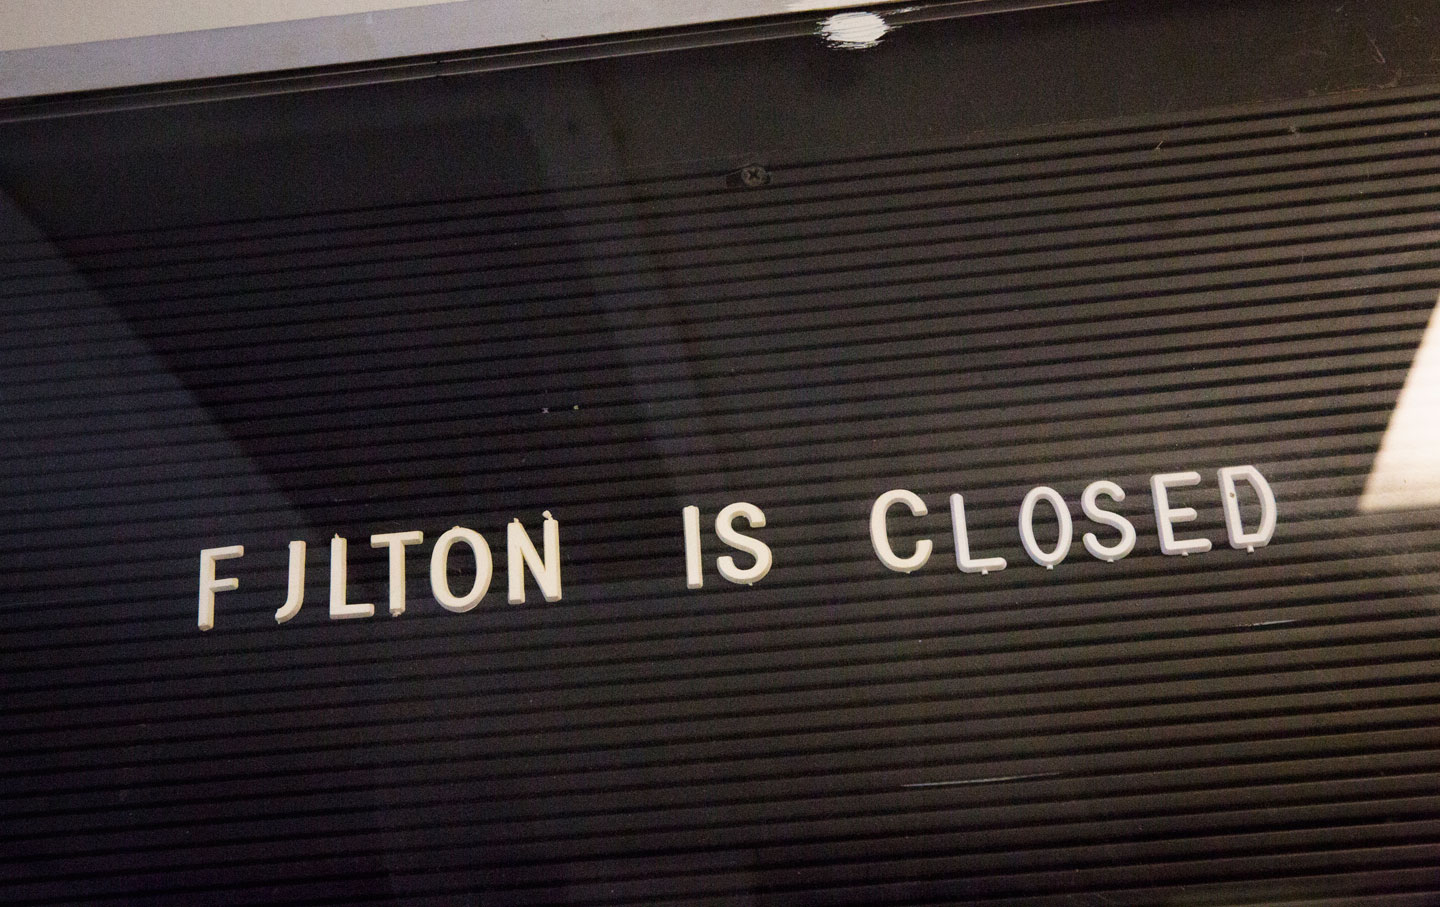 Fulton is one of 13 prisons closed in New York State over the last four years.